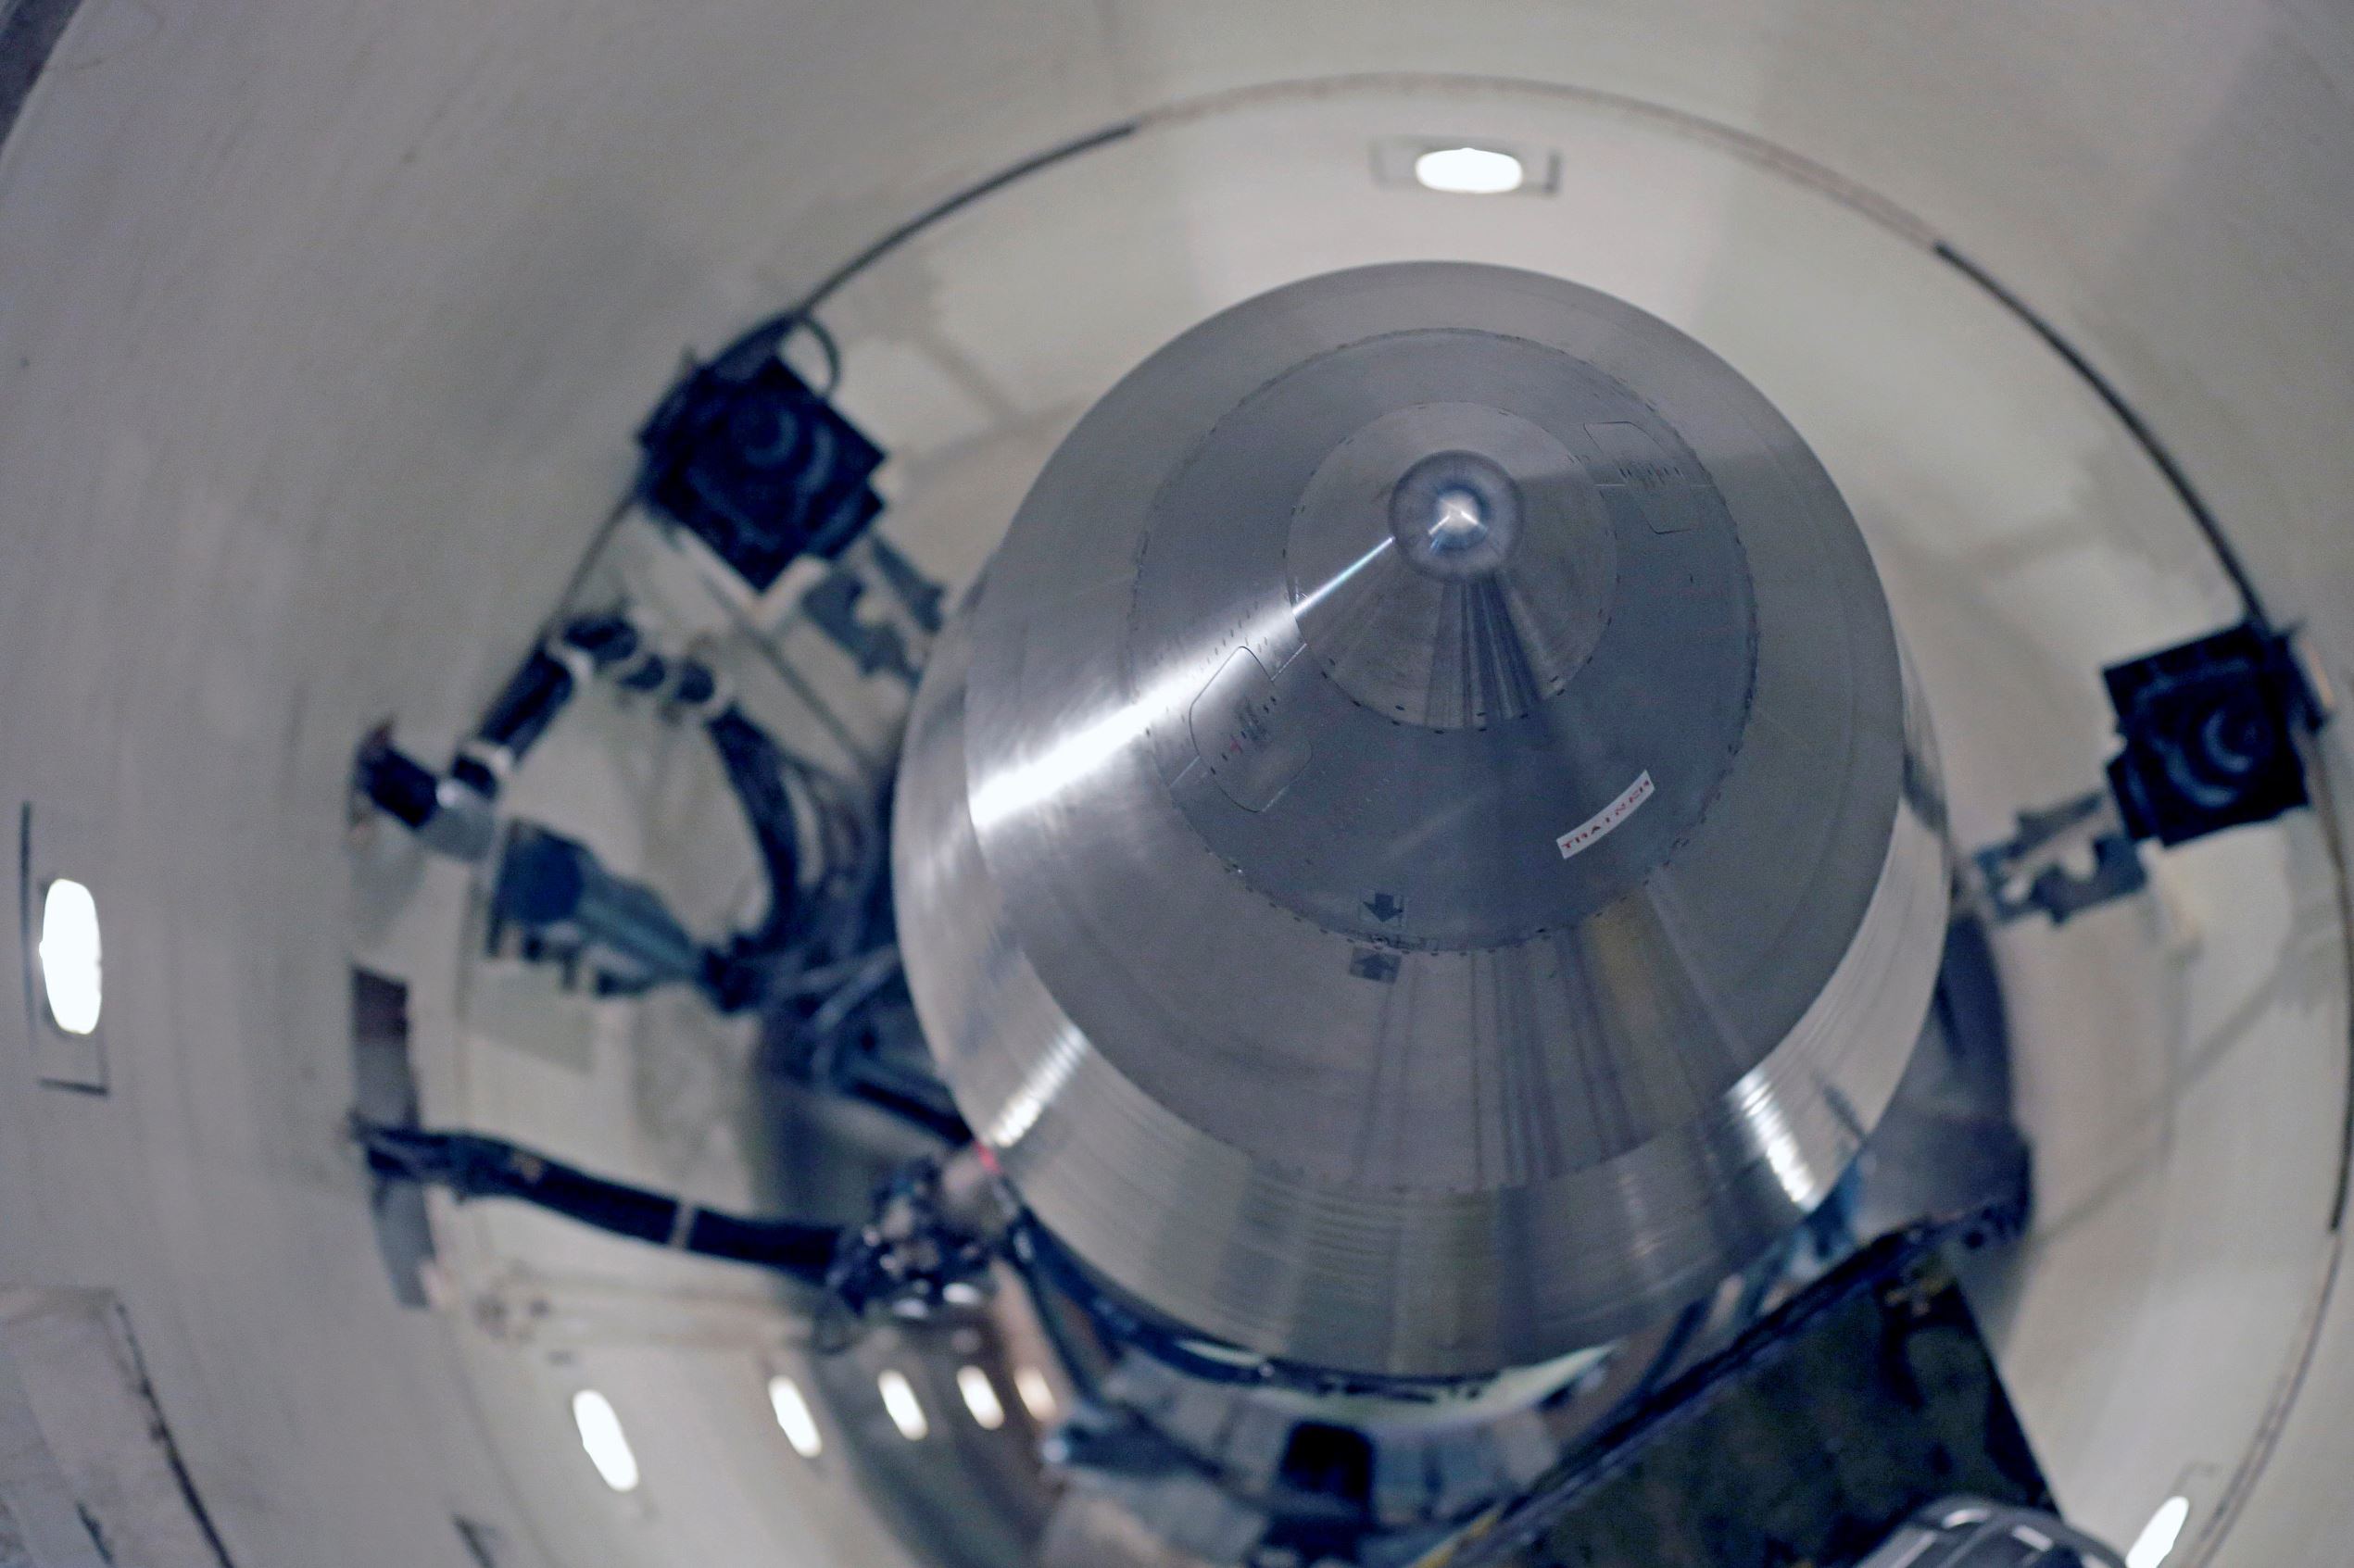 This photo taken June 25, 2014, shows an inert Minuteman 3 missile in a training launch tube at Minot Air Force Base, N.D. The base is tasked with maintaining 150 of the nuclear-tipped missiles spread out across the North Dakota countryside and keeping them ready to launch at a moment's notice as part of the US's nuclear defense strategy.